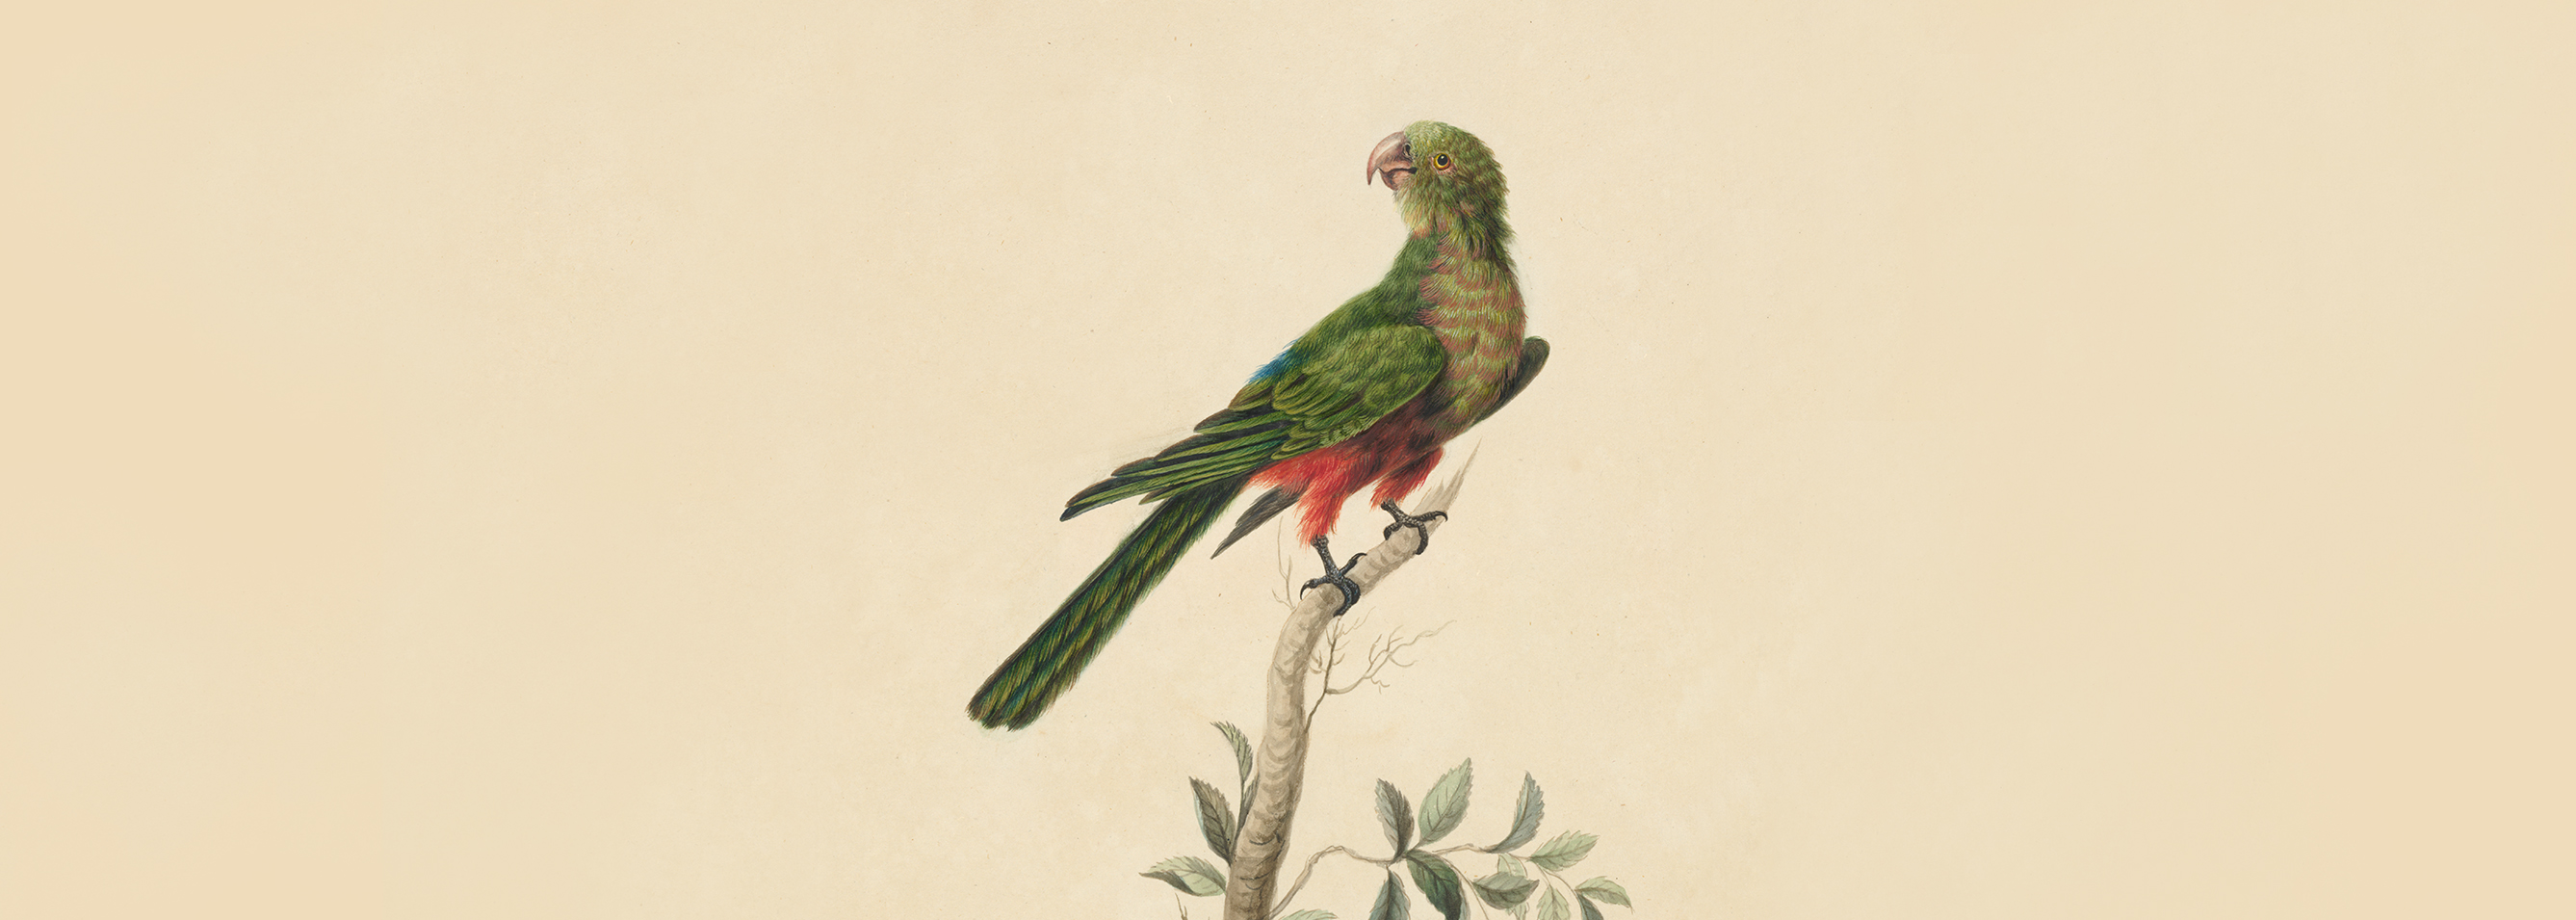 King Parrot by Sarah Stone